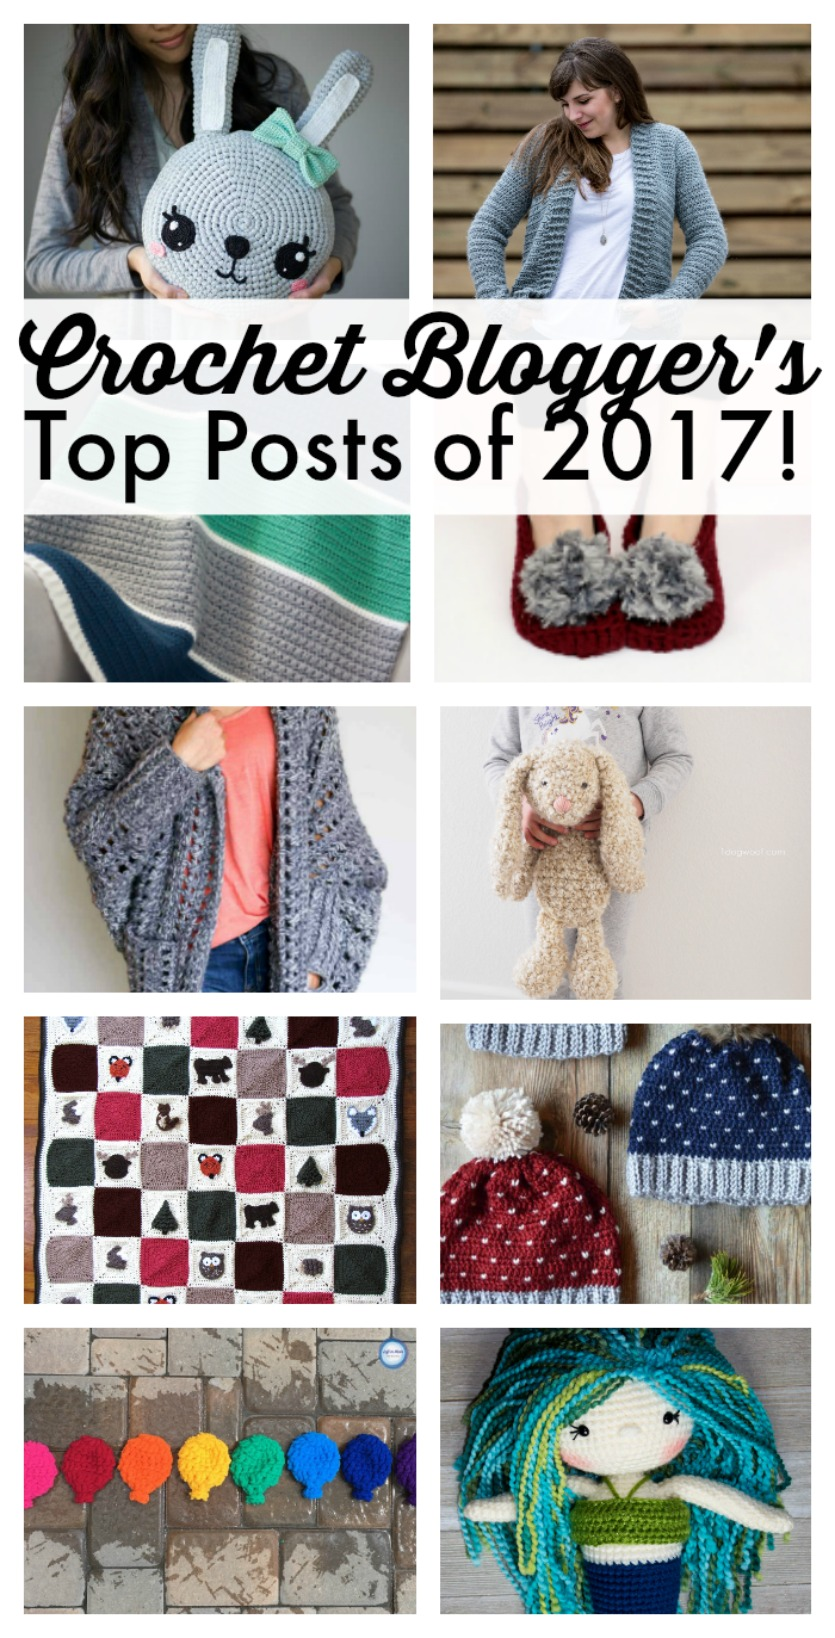 crochet bloggers top posts 2017